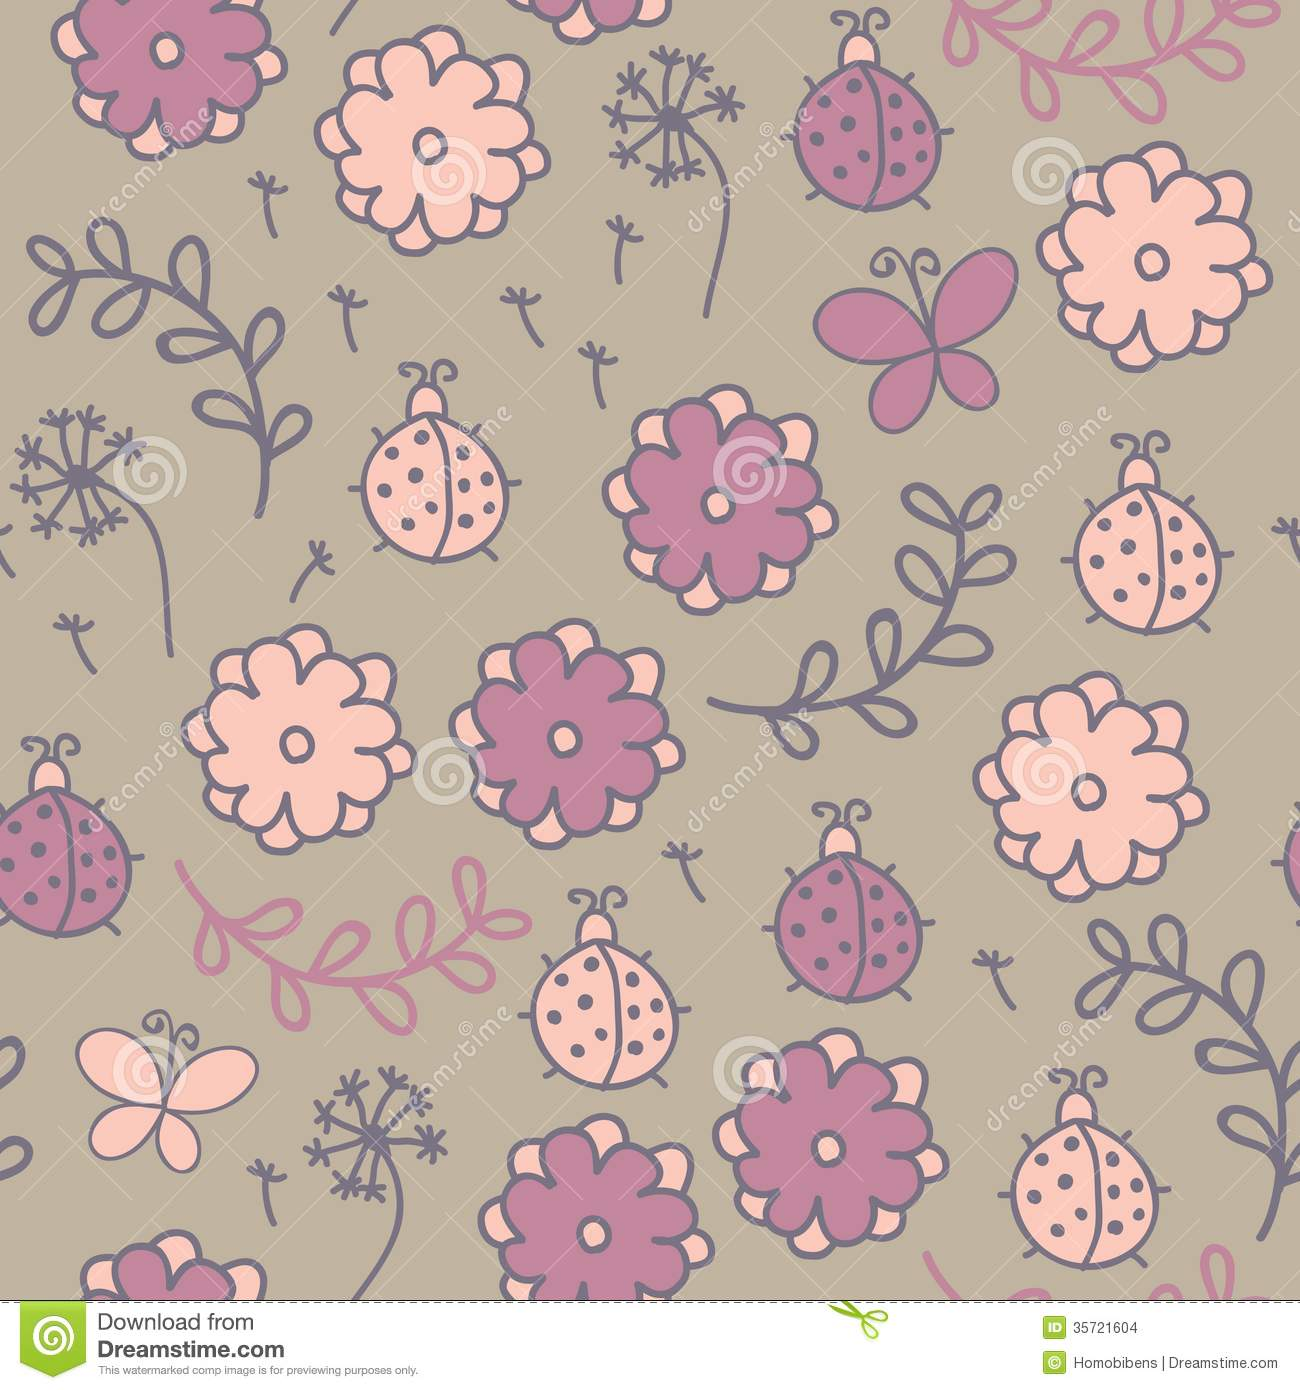 Romantic seamless pattern with ladybugs, flowers,